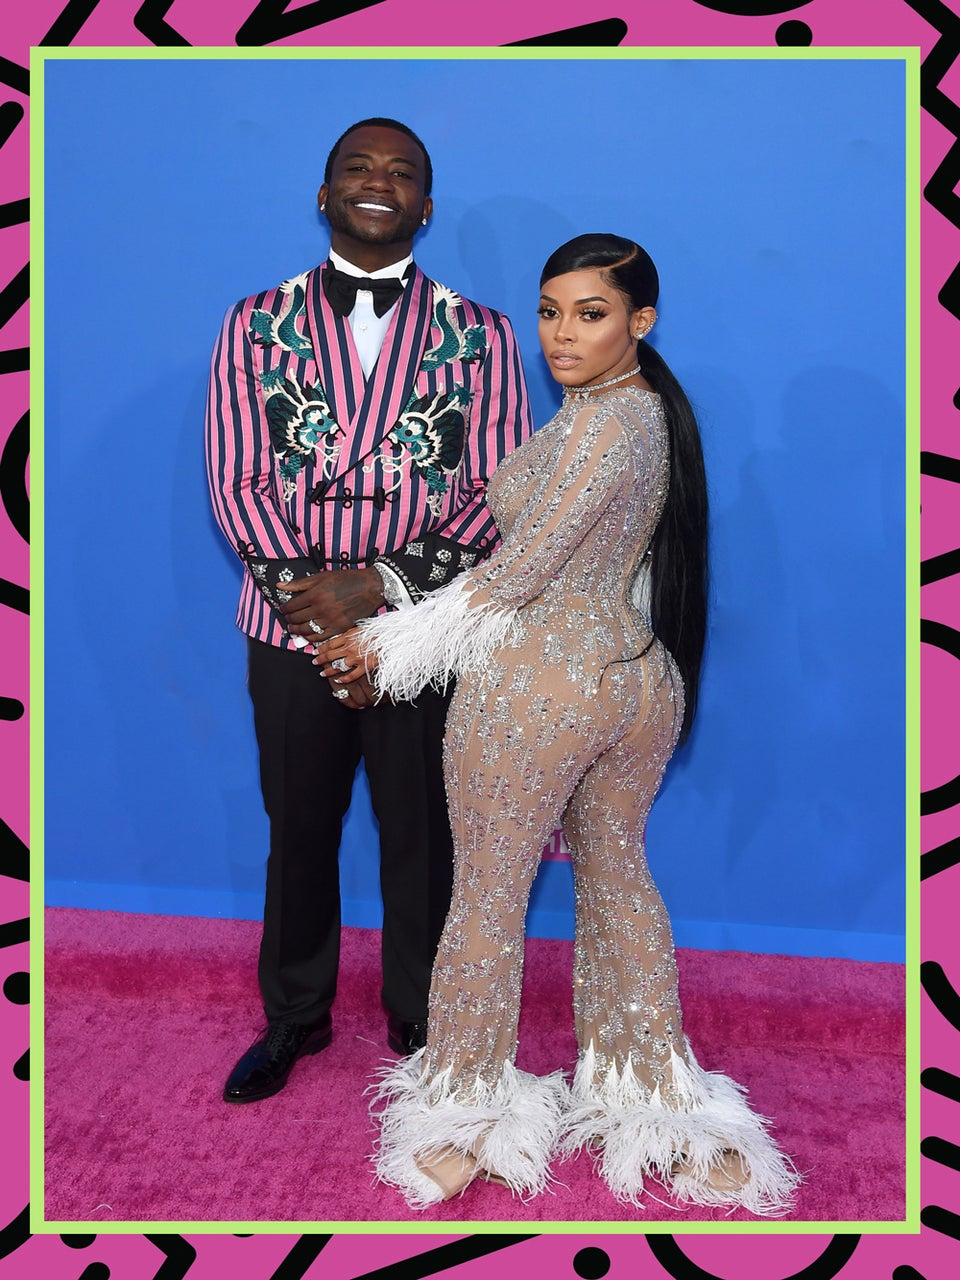 Gucci Mane And Keyshia Ka'Oir Serve Consistency On The VMA's Red Carpet